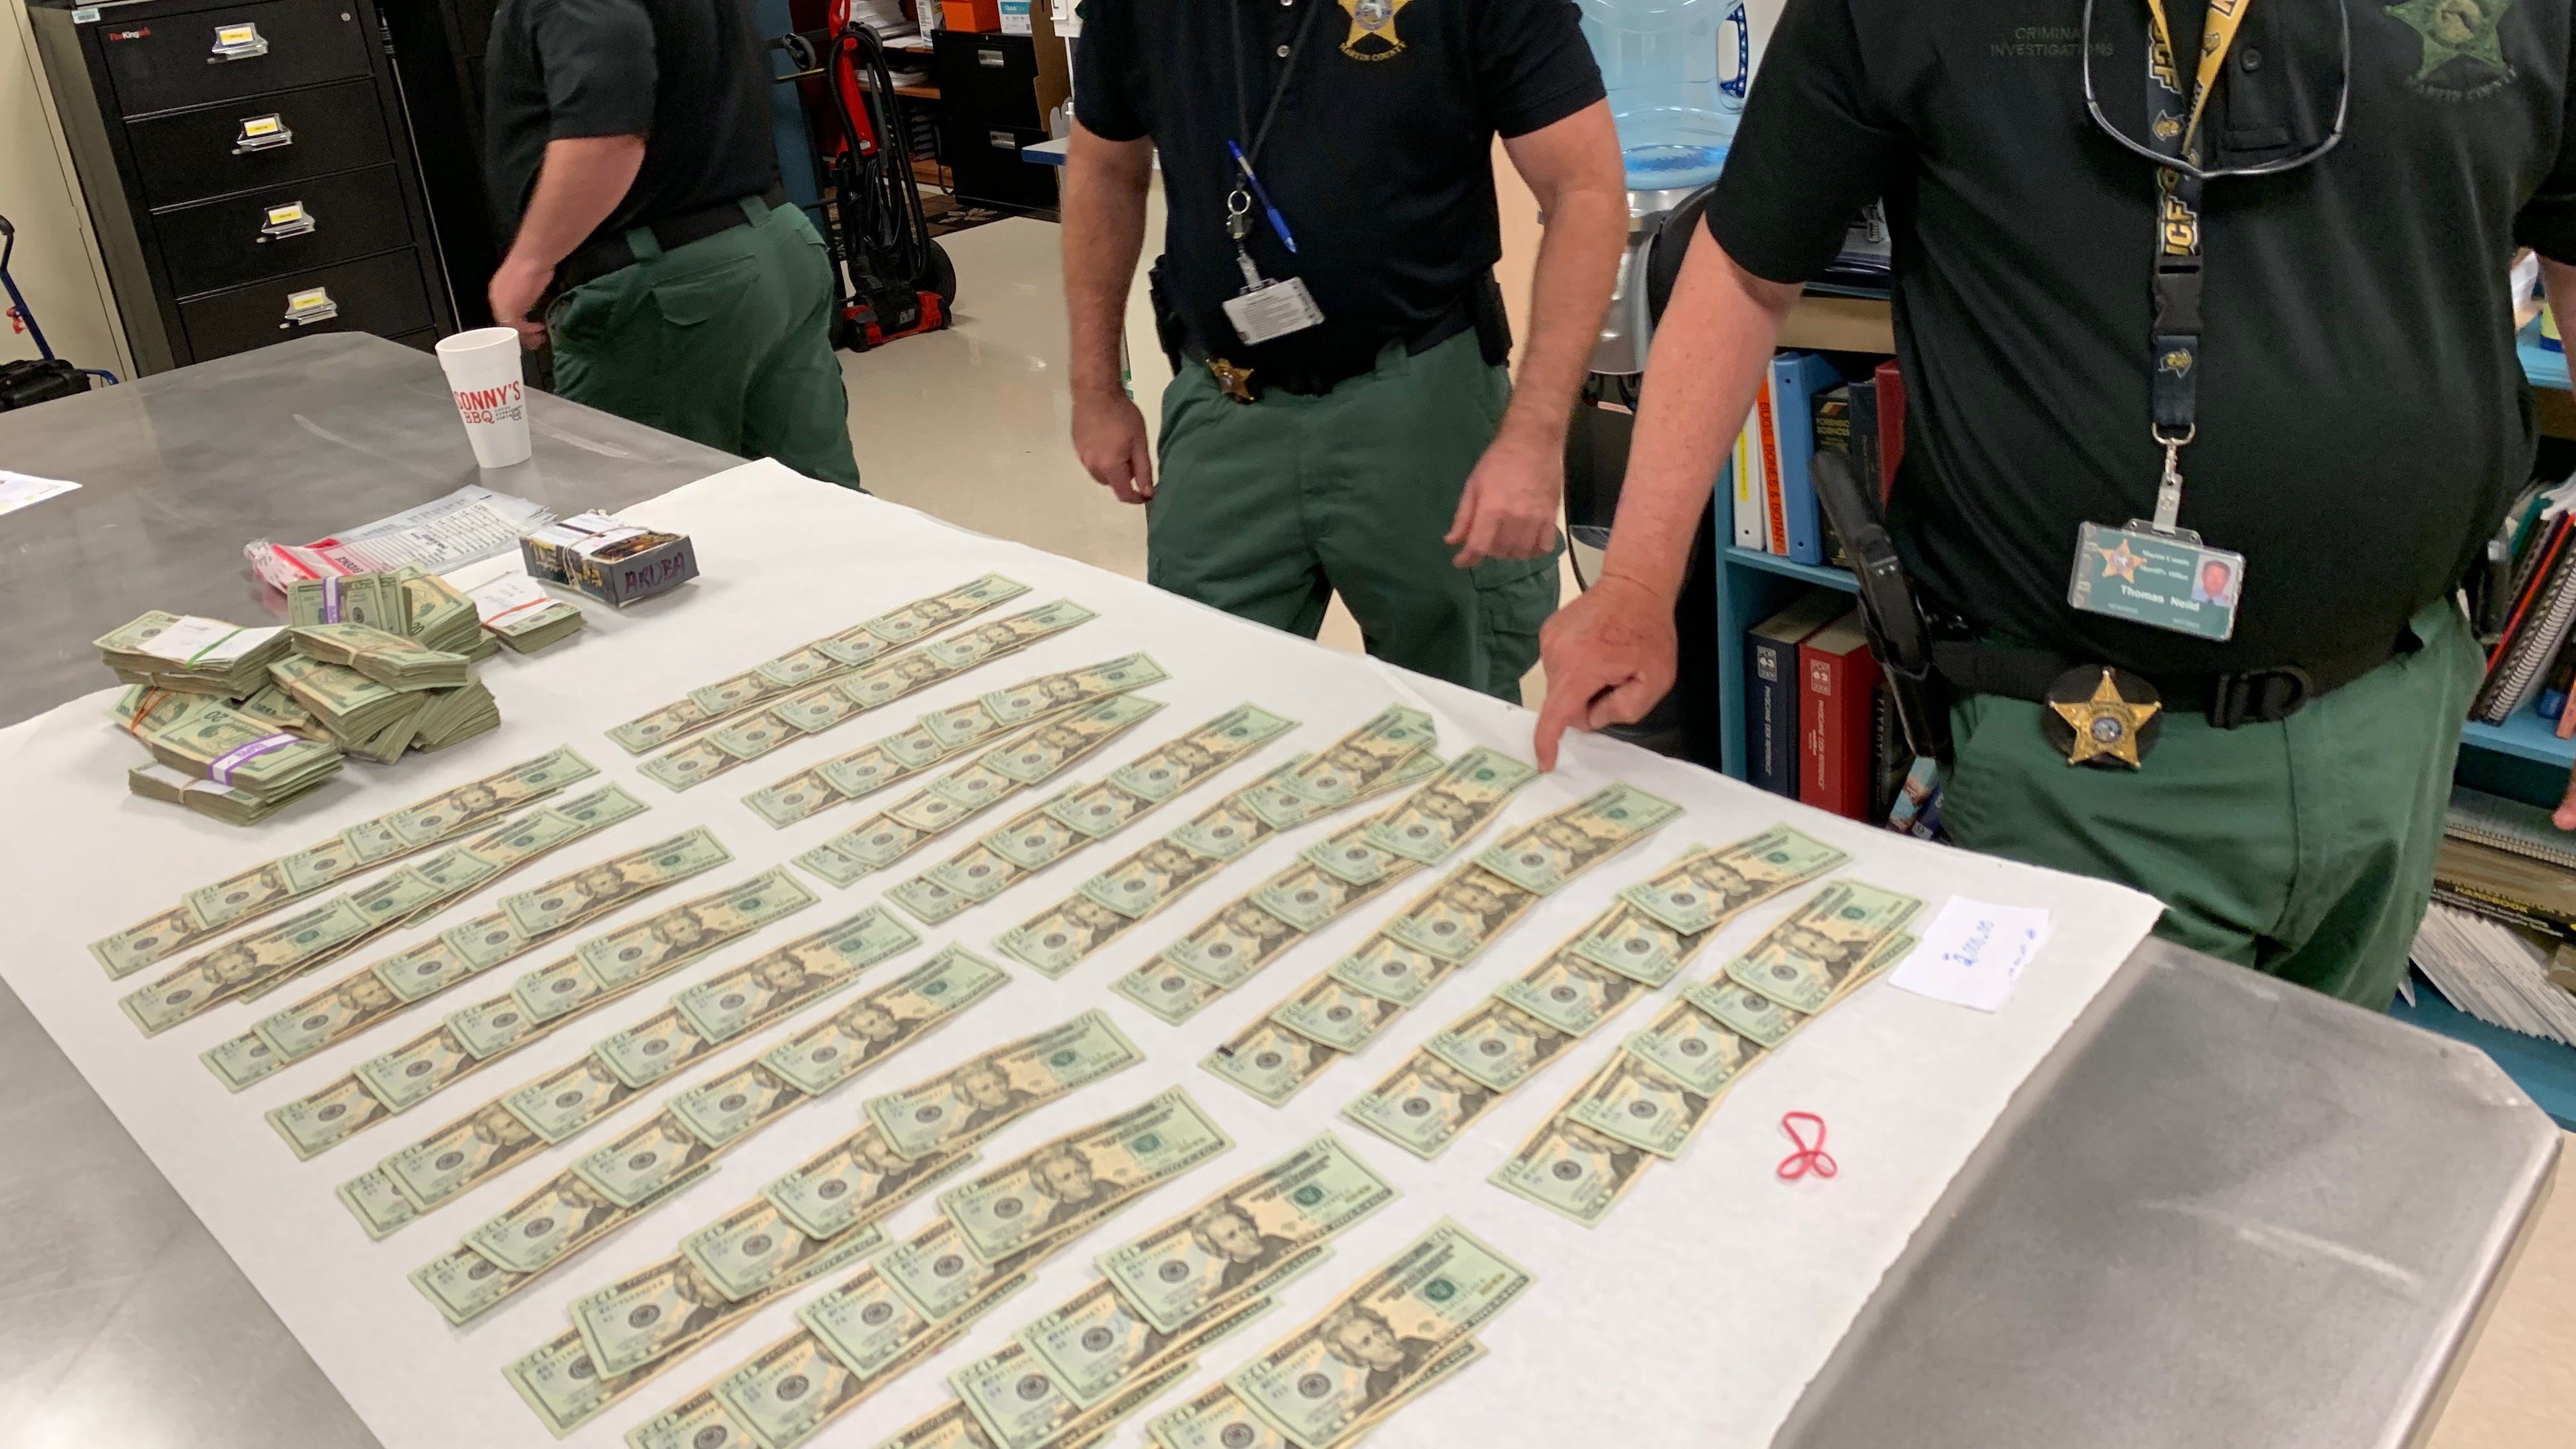 Thousands of dollars seized in an investigation into illicit spas are seen in this photo provided by the Martin County Sheriff's Office.